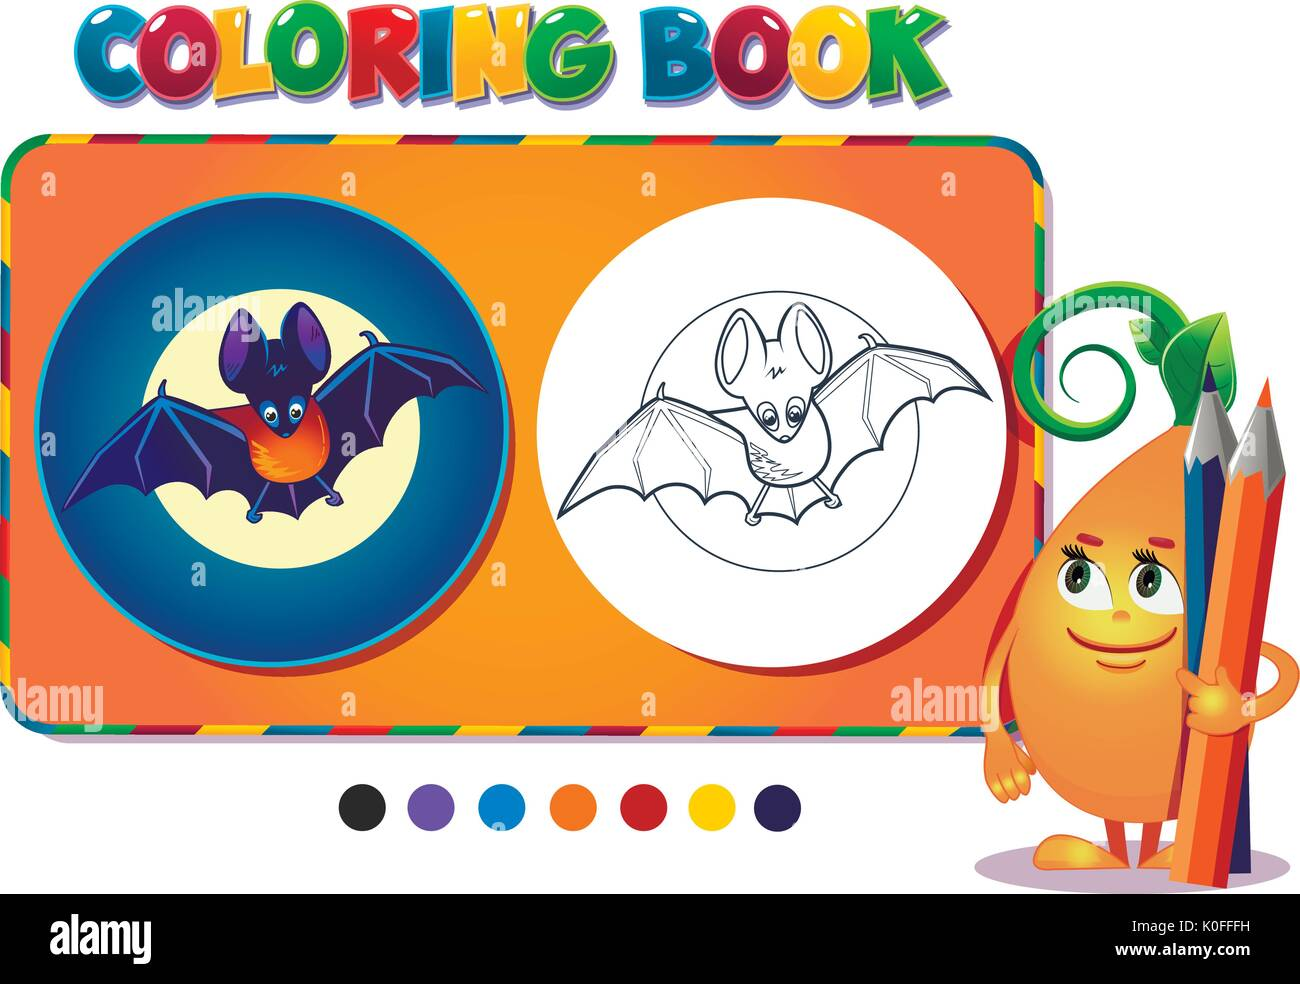 Coloring book boy with a bat  - vector illustration. - Stock Image